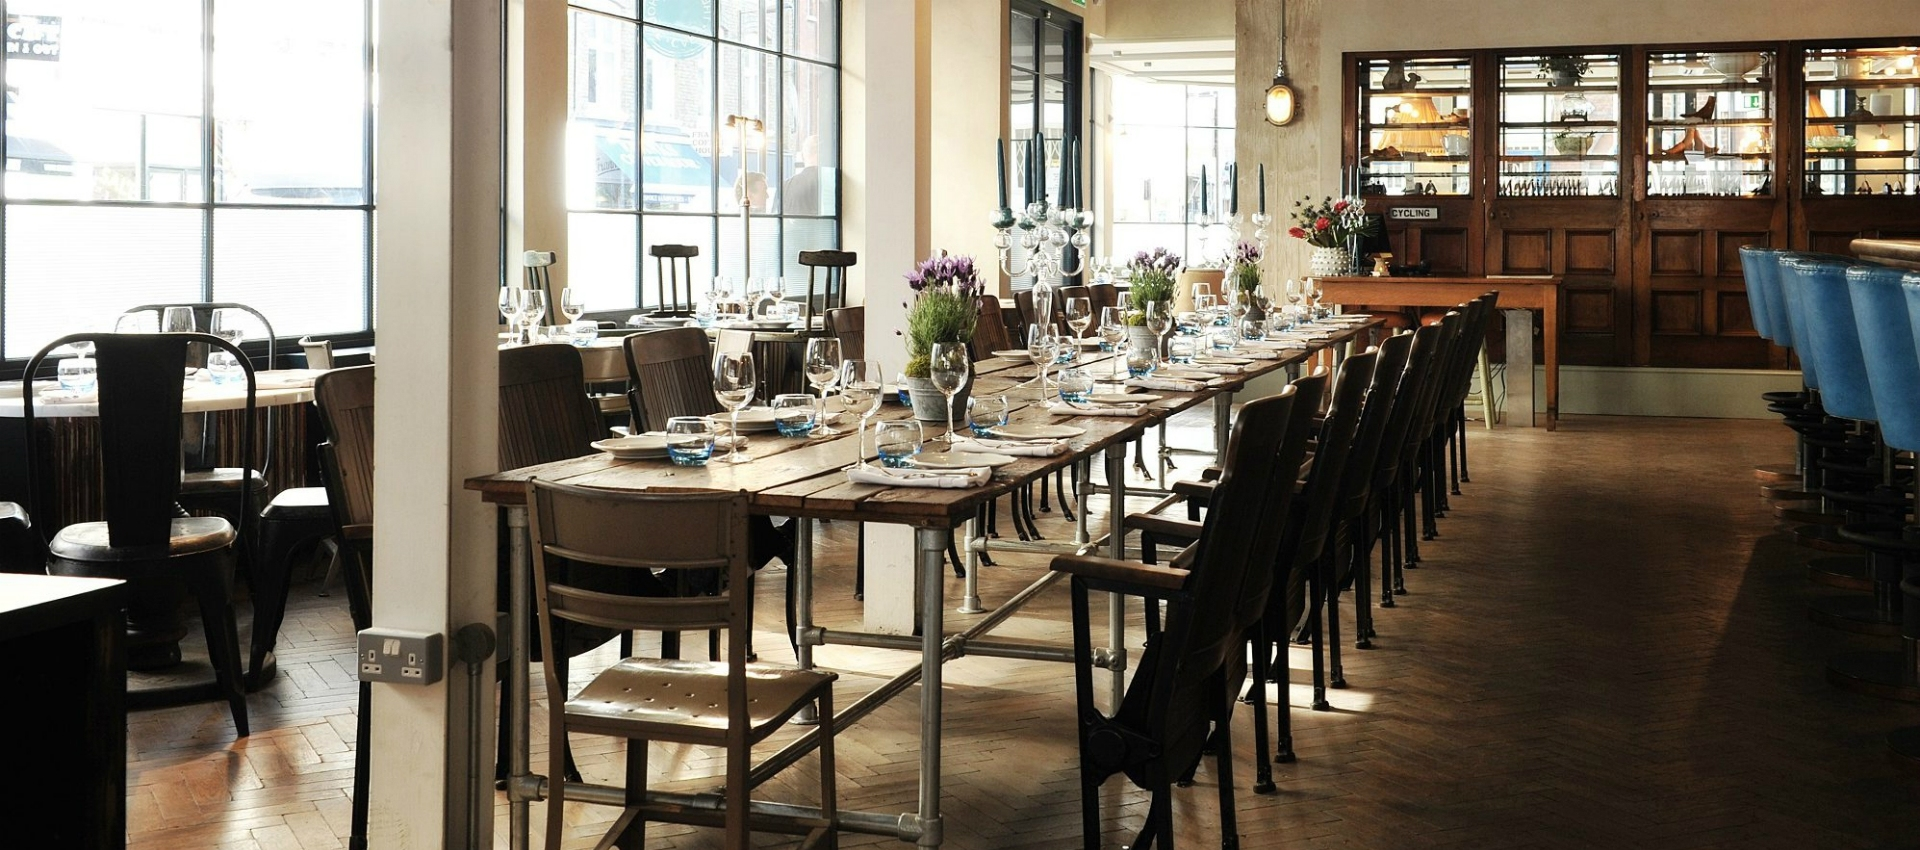 Riding House Café | Relaxed, Industrial Brasserie In A Quiet throughout Riding House Cafe Covent Garden